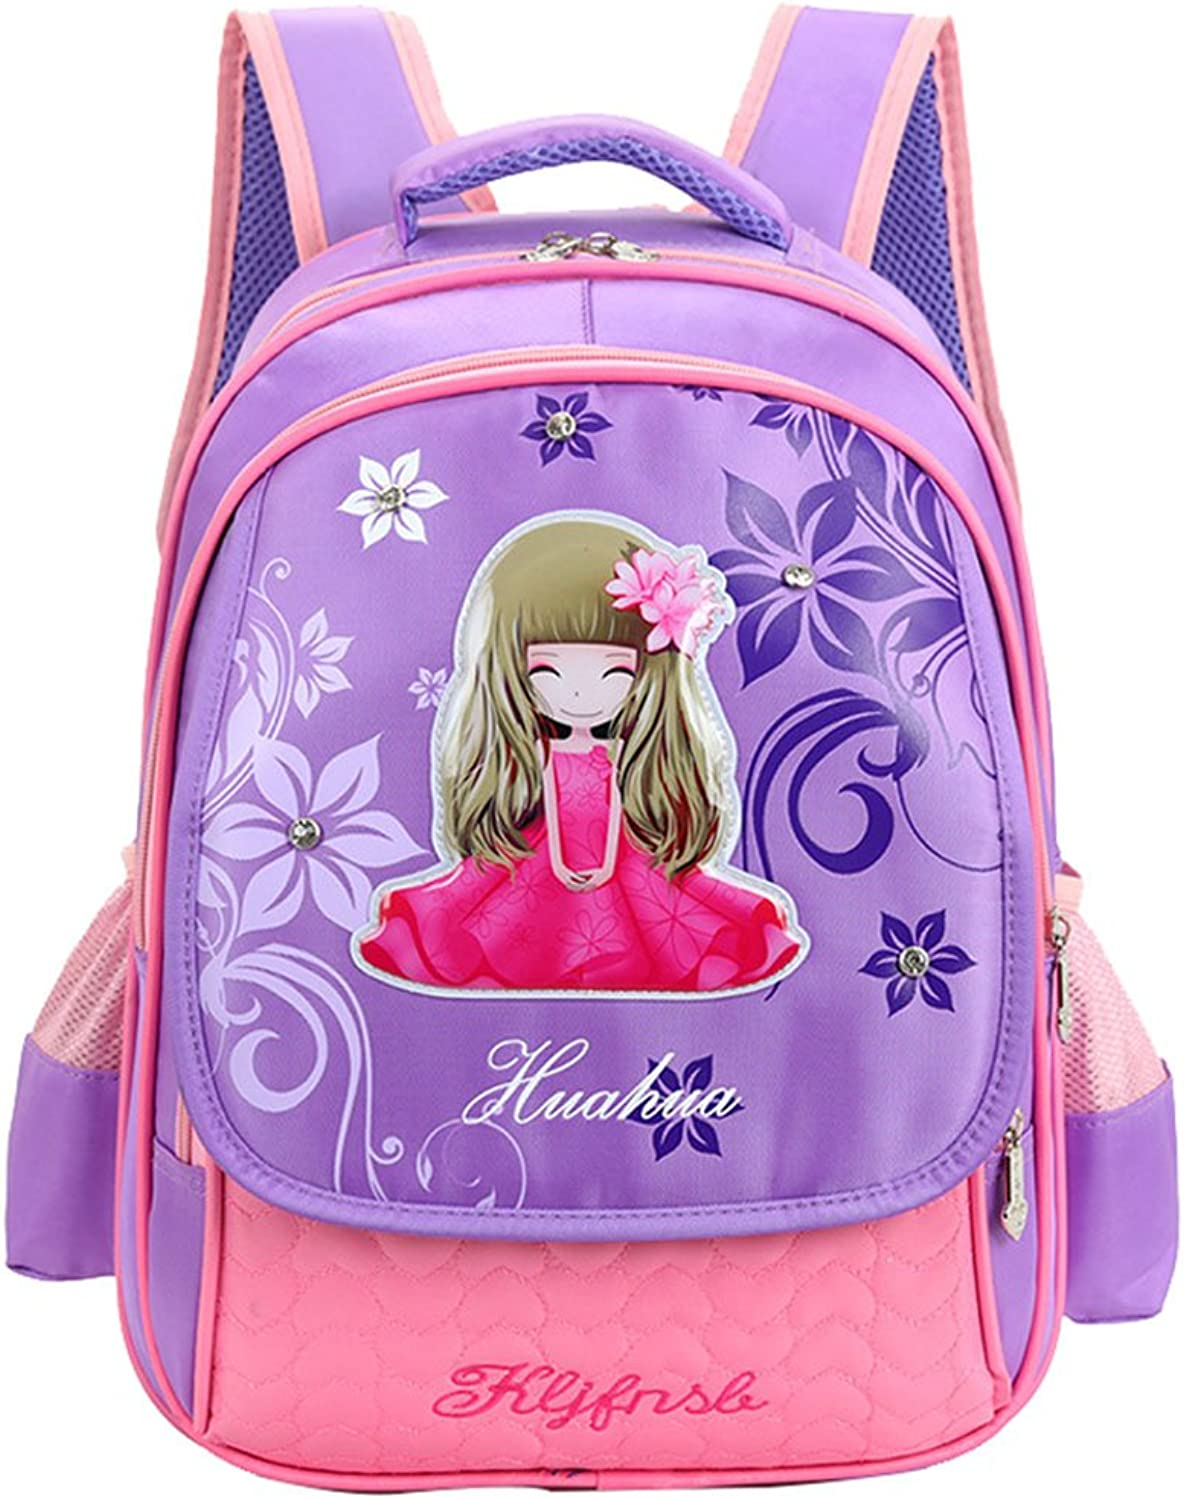 Betop House Princess Design Nylon Kids School Bag Backpack for Girls (Purple)